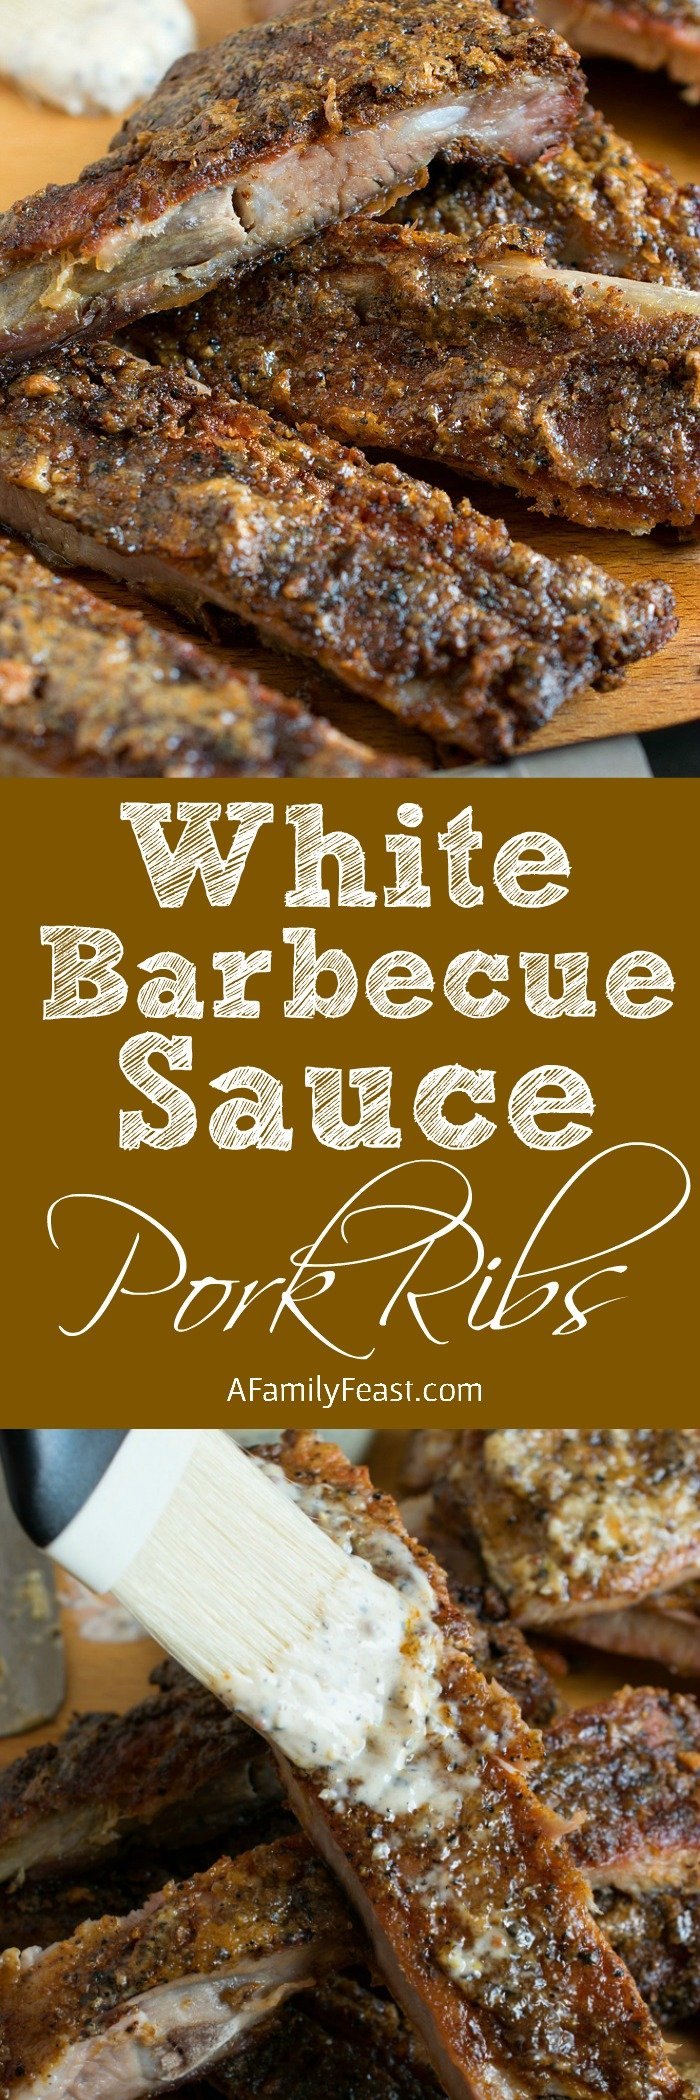 barbecue sauce cola barbecue sauce budday s wild white bbq sauce